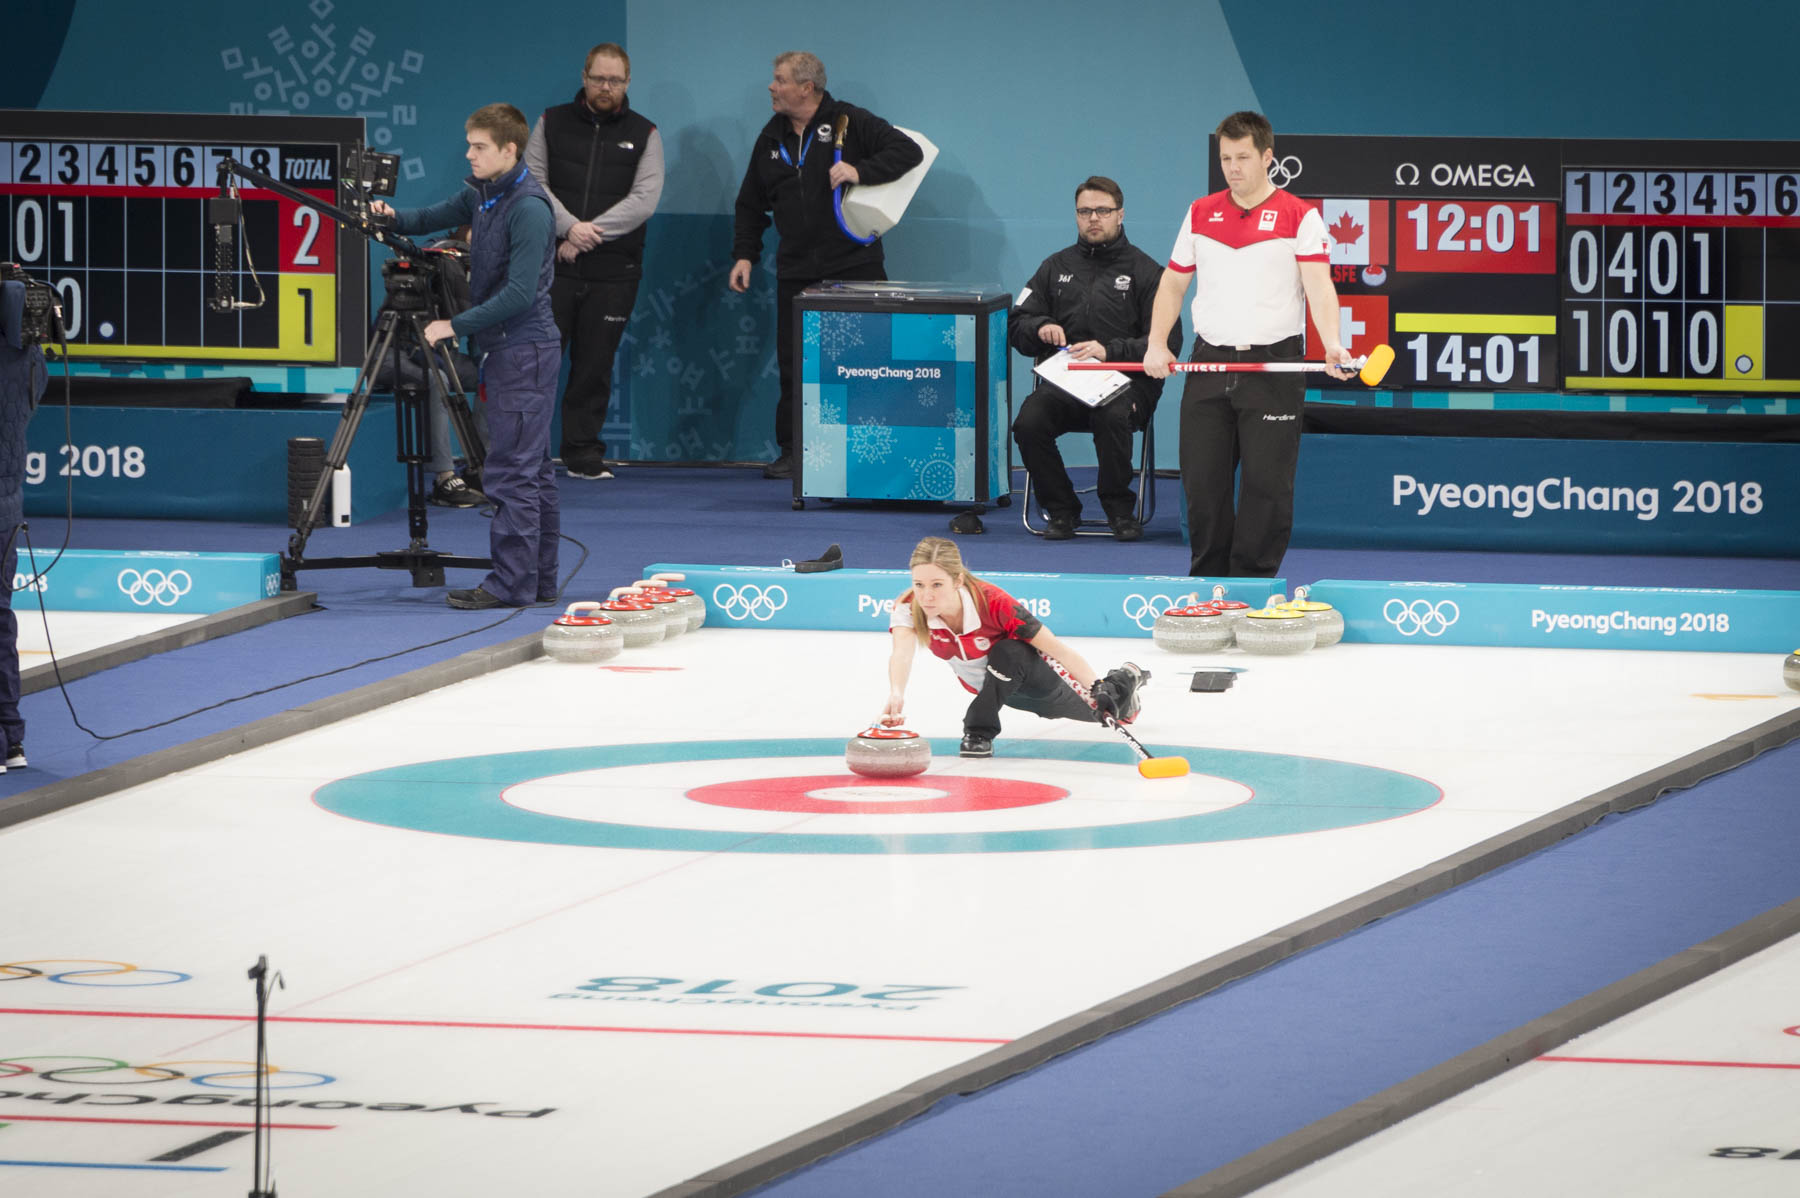 Curling is very strategic game that requires precision and technique.